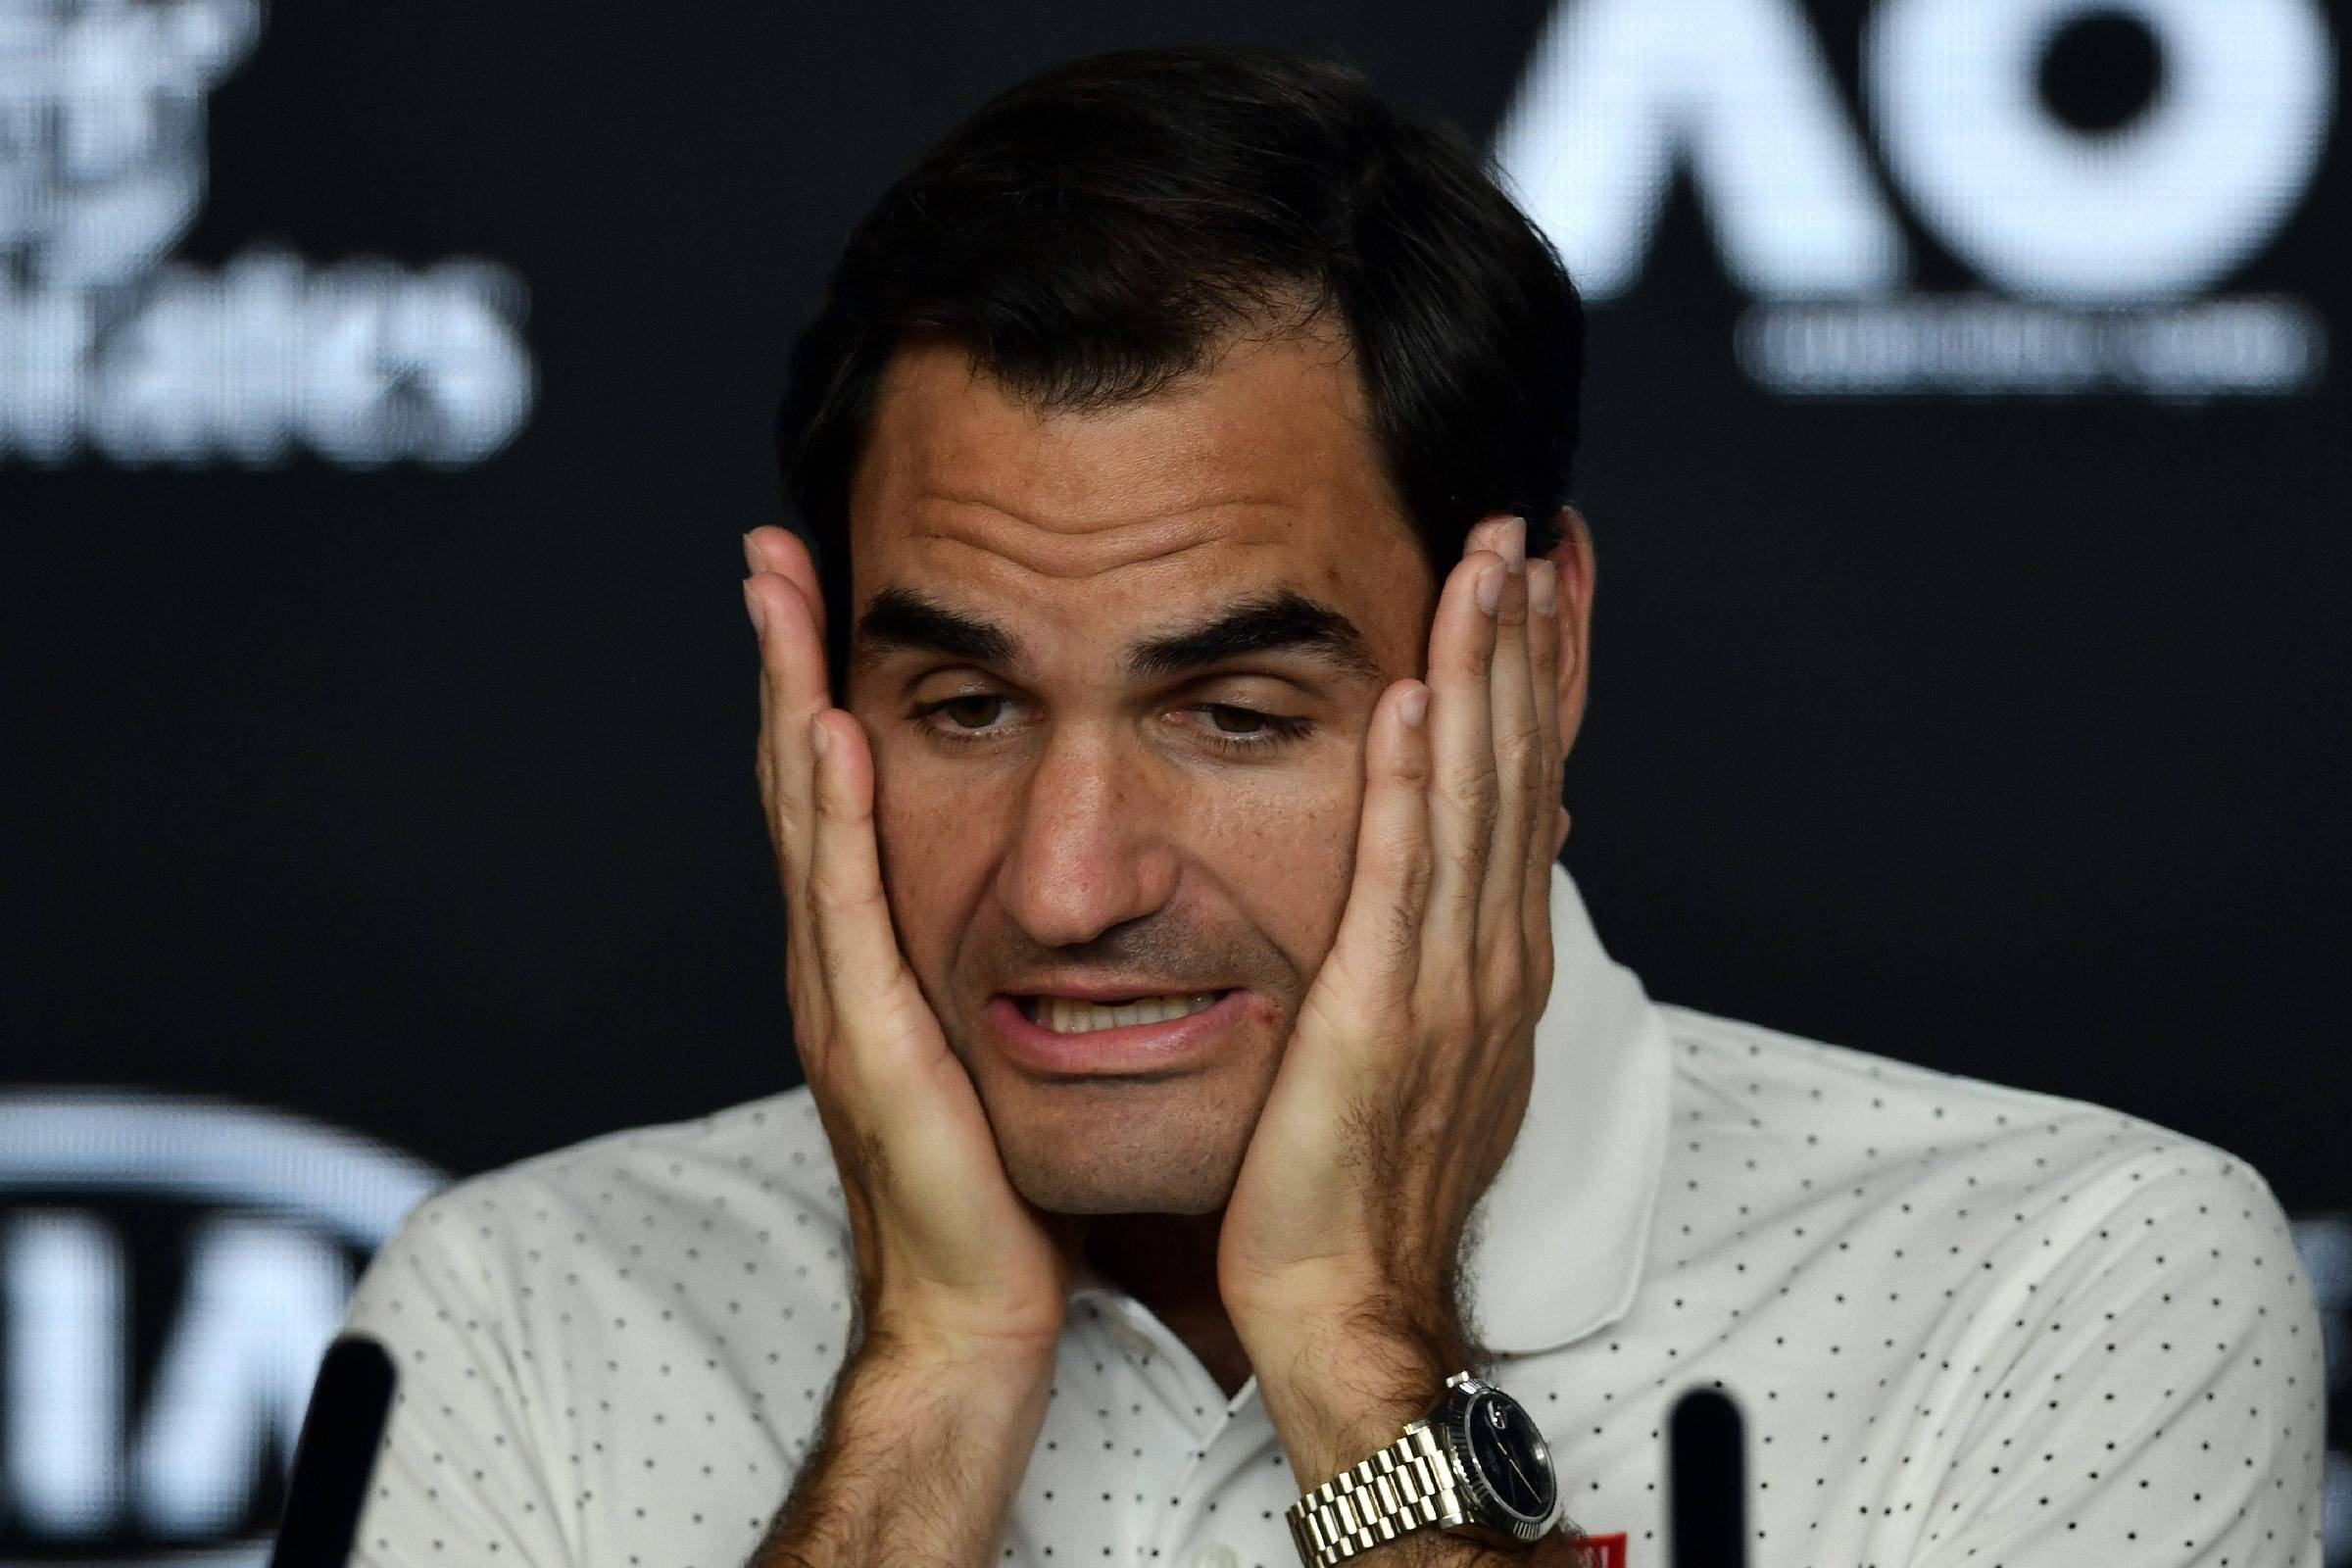 I couldn't have done more, says Federer after being called selfish